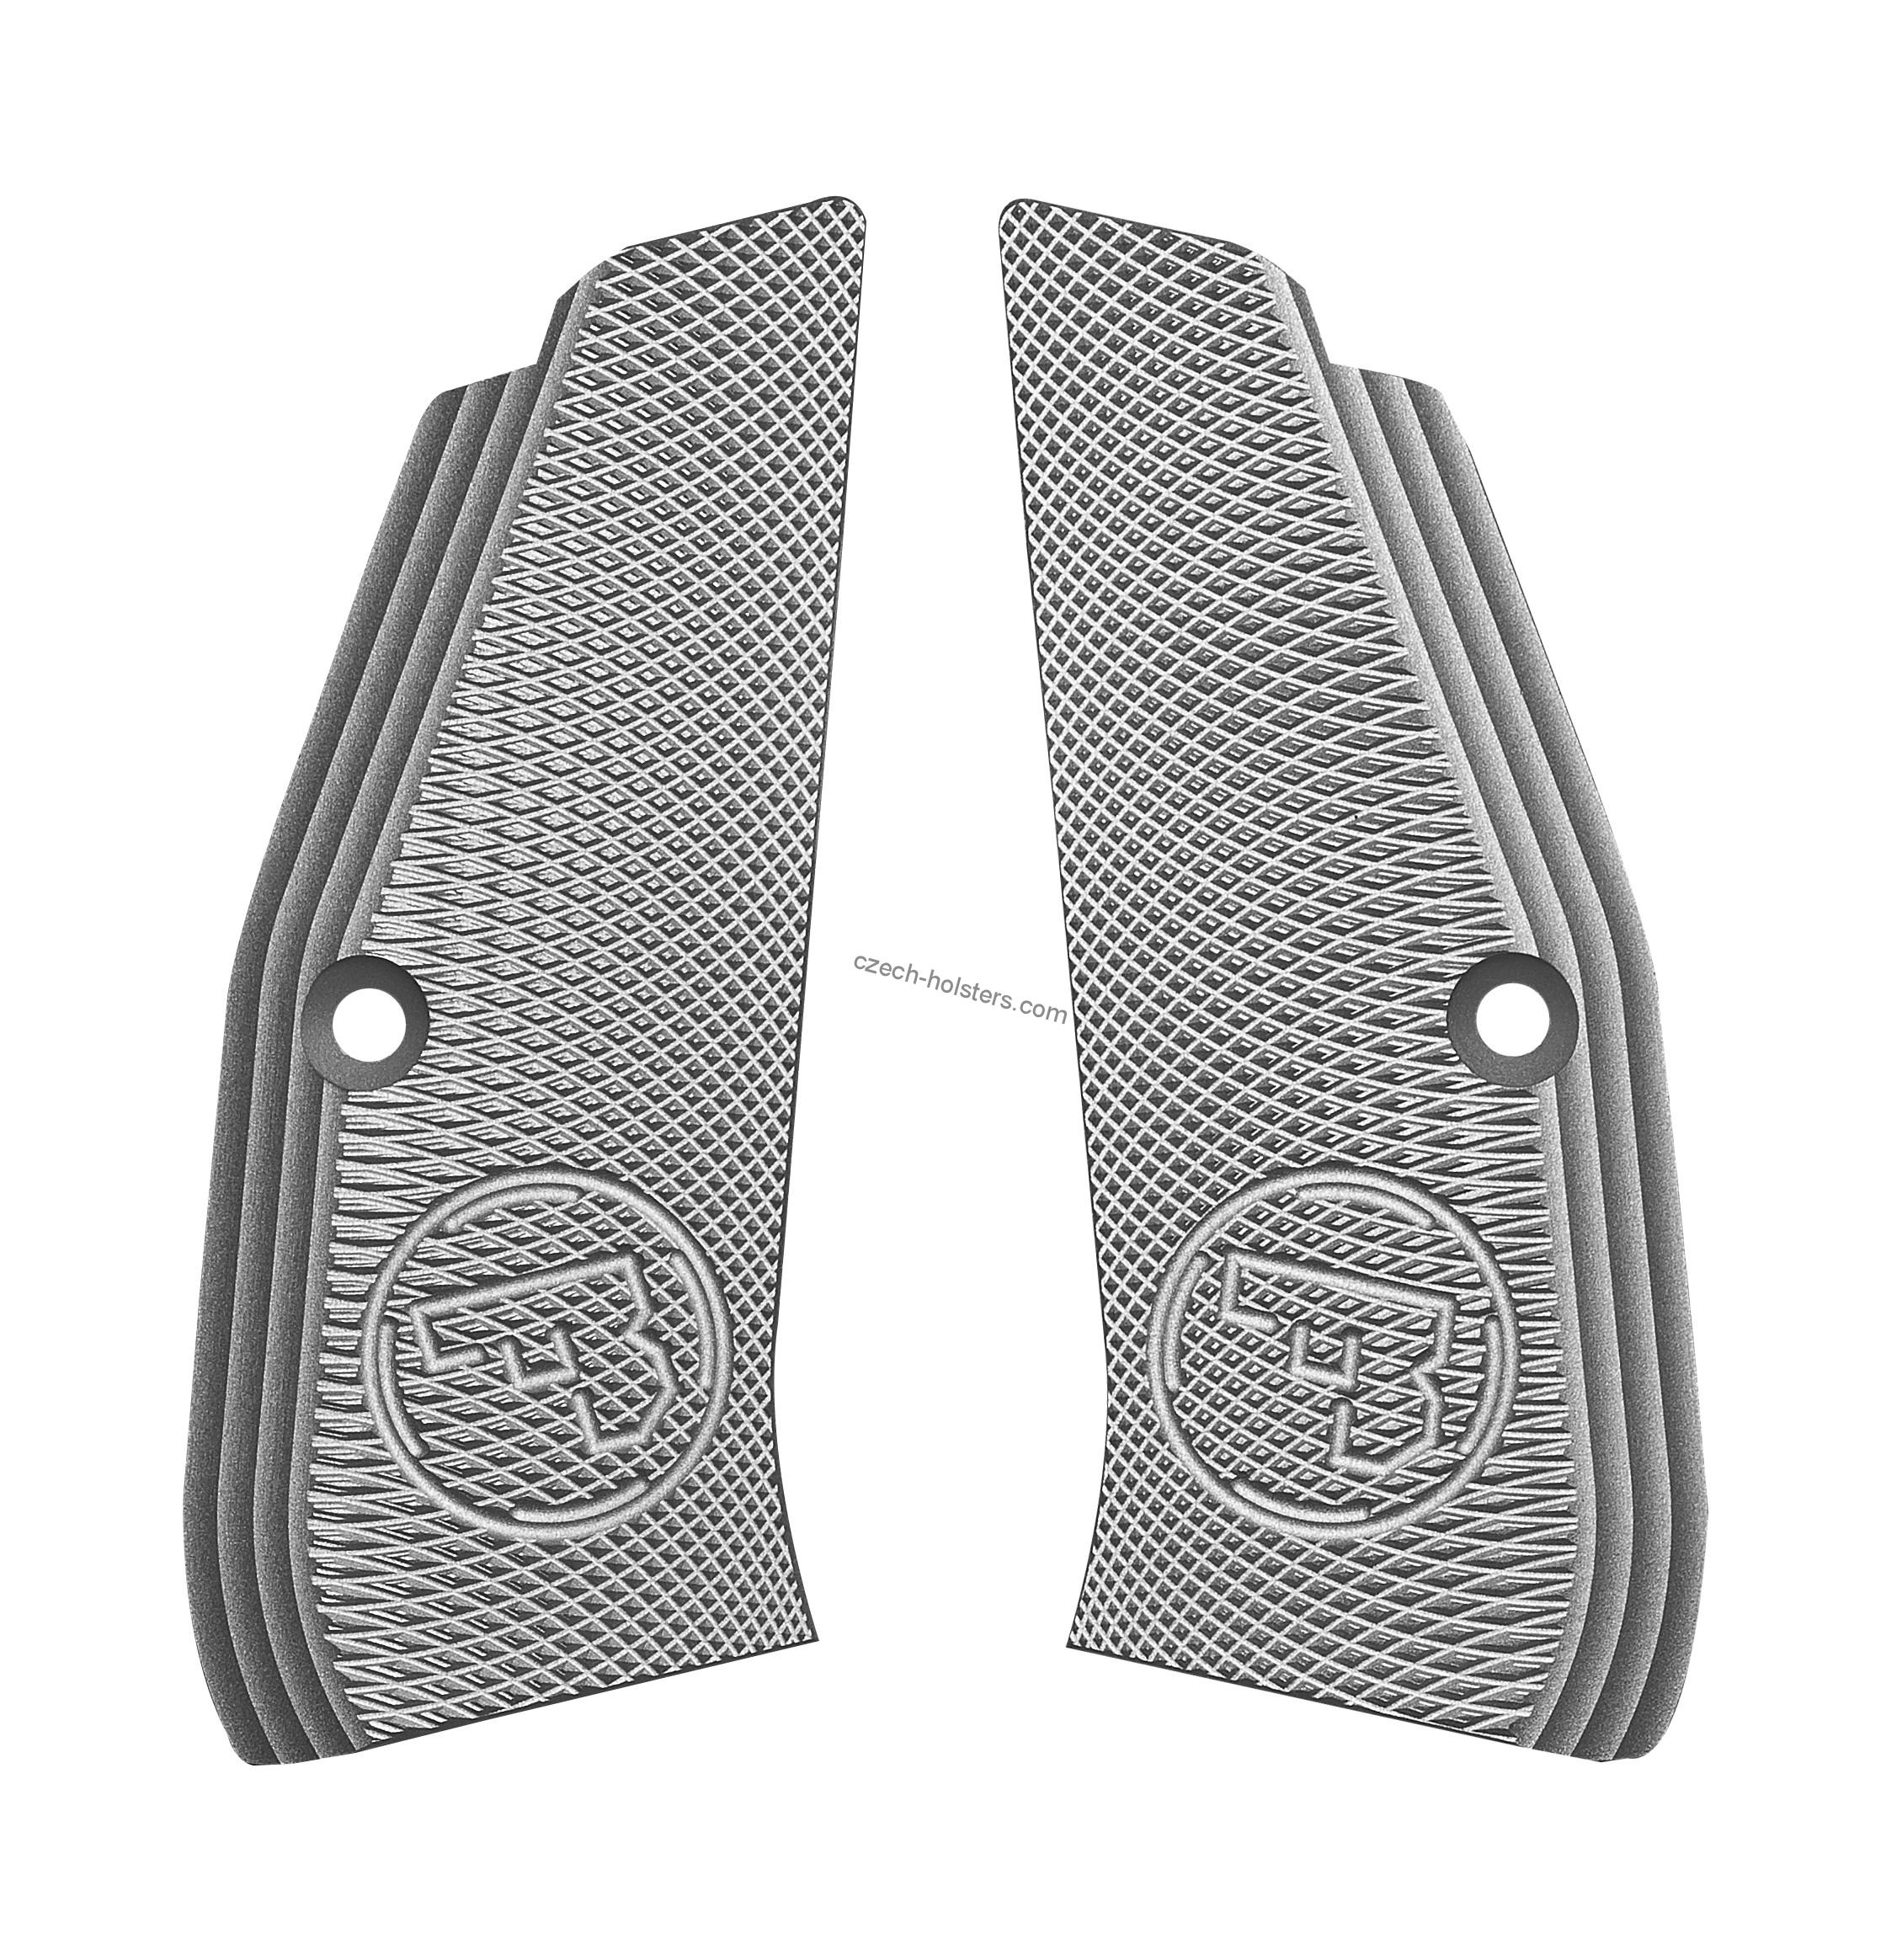 CZ 75 Grooved Grips without Funnel - Long - Colour Options - CZUB®